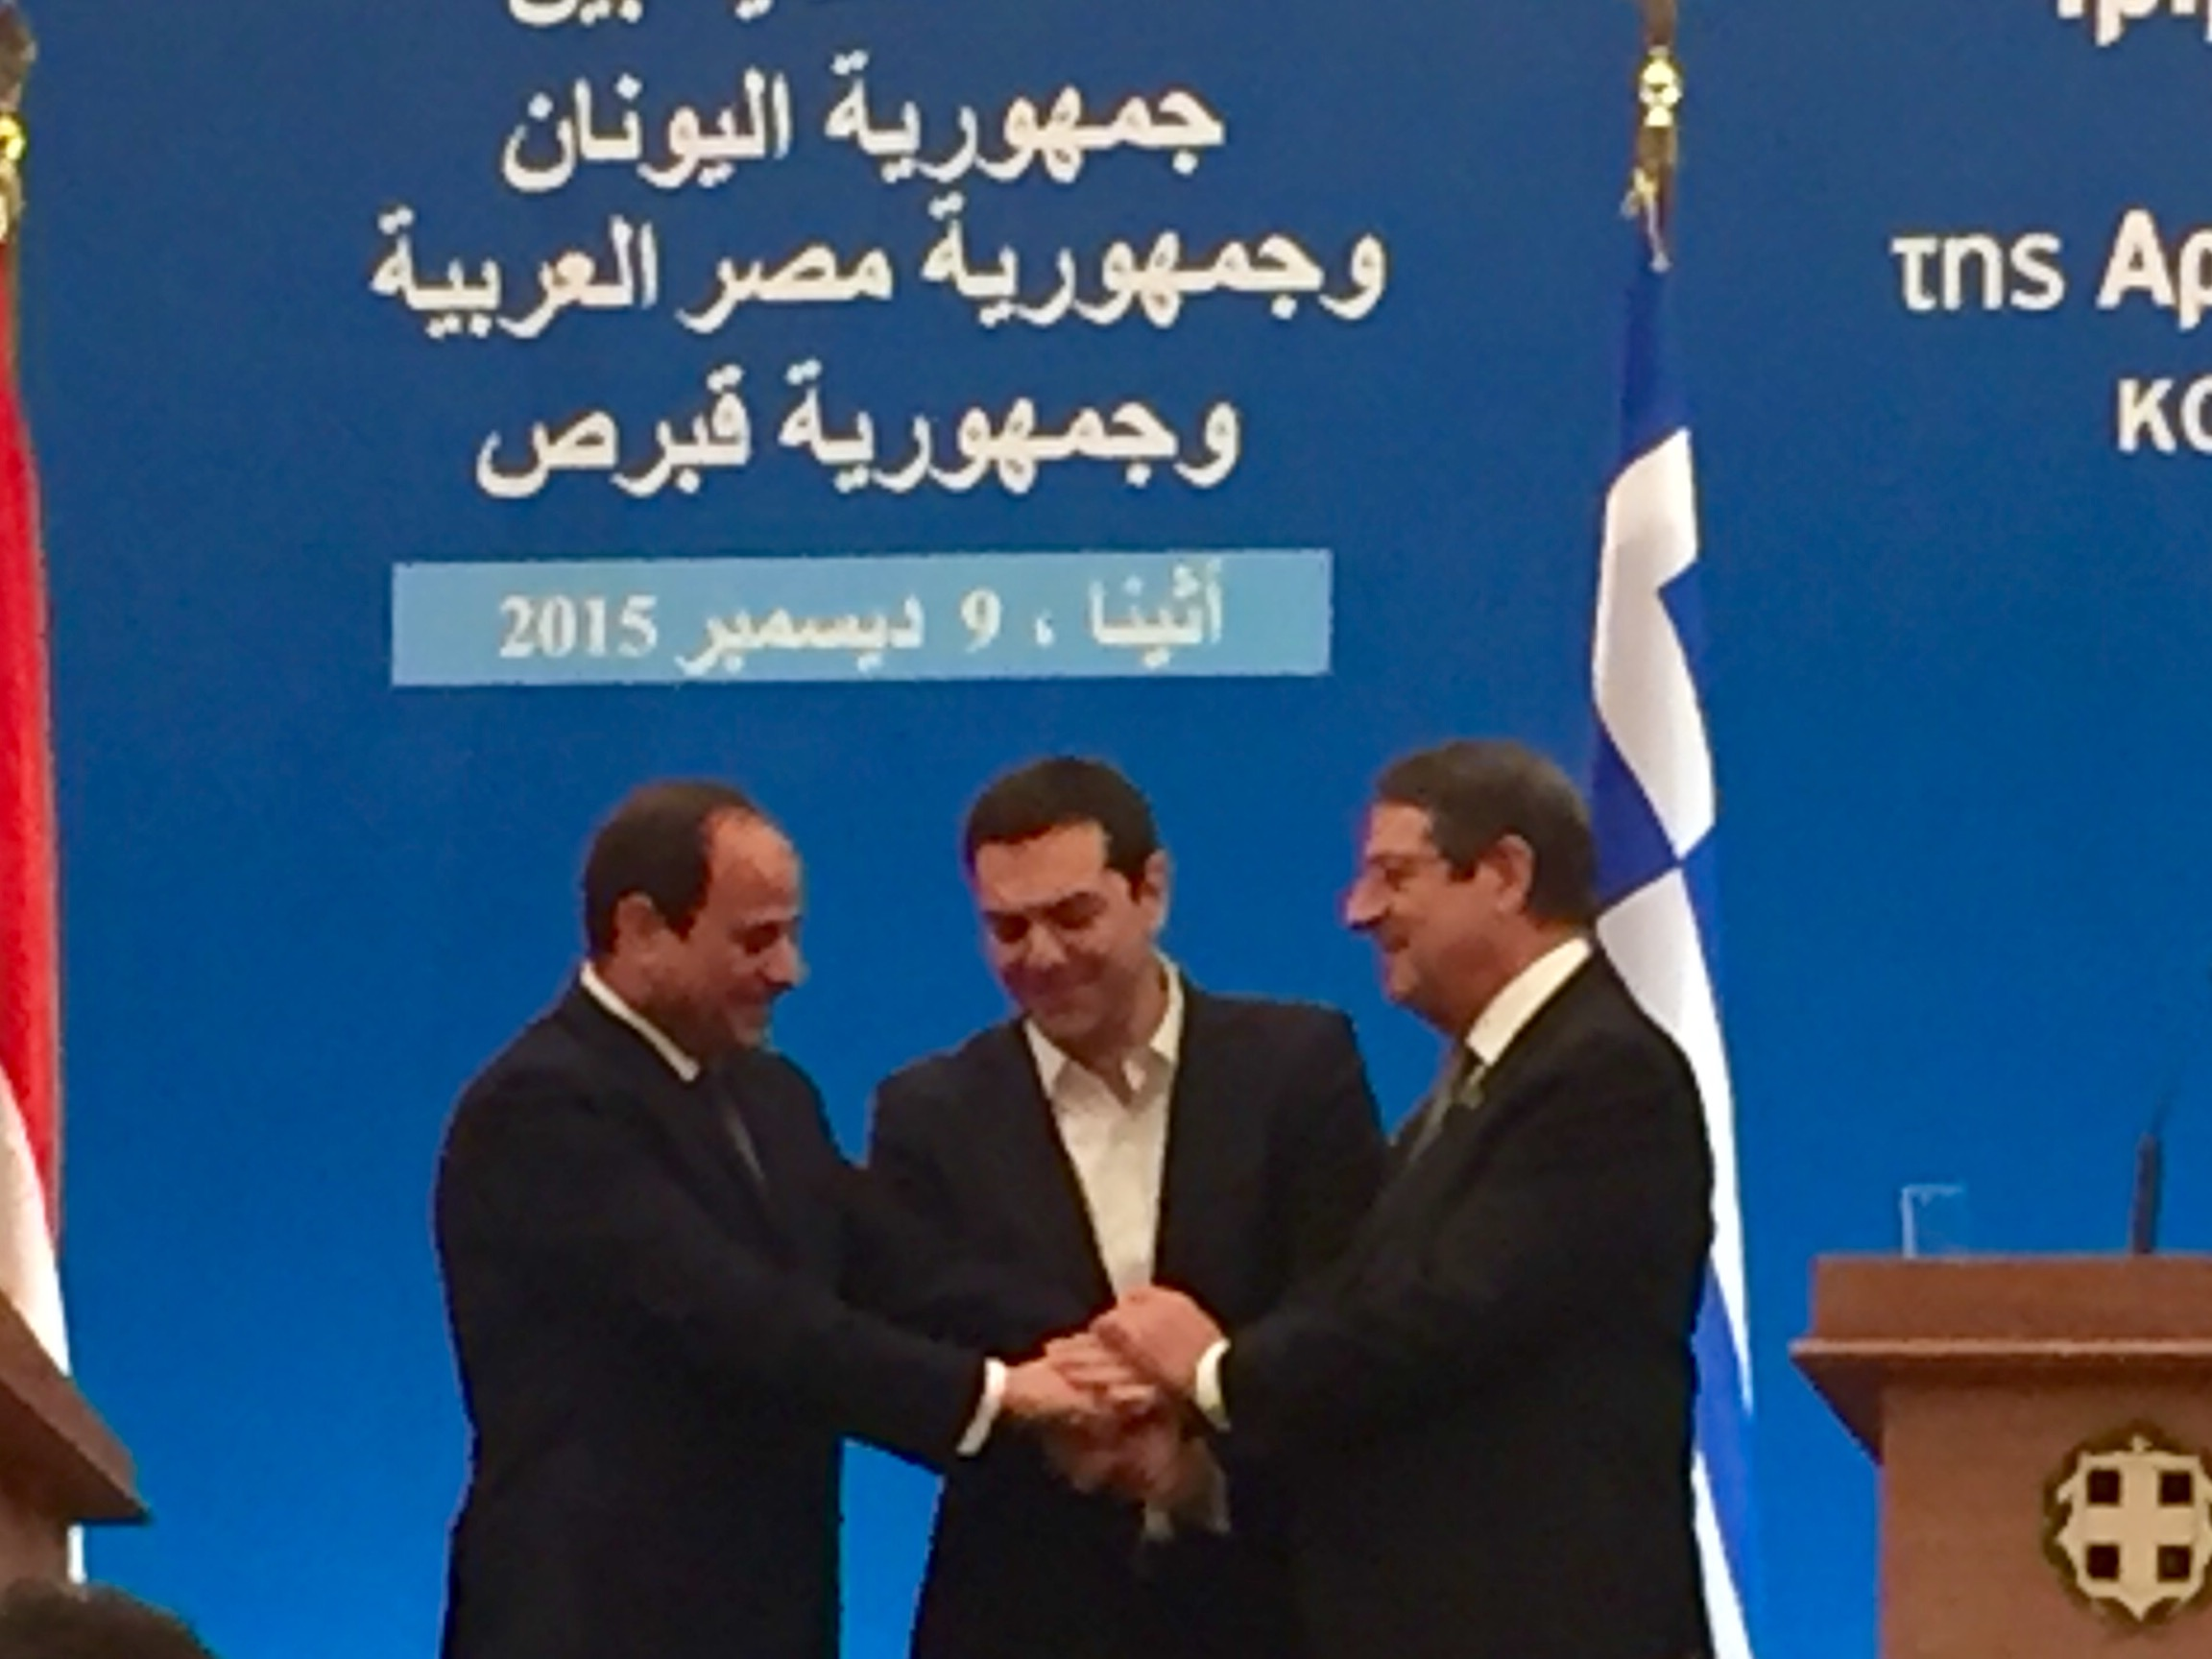 Egypt-Greece-Cyprus trilateral meeting completed